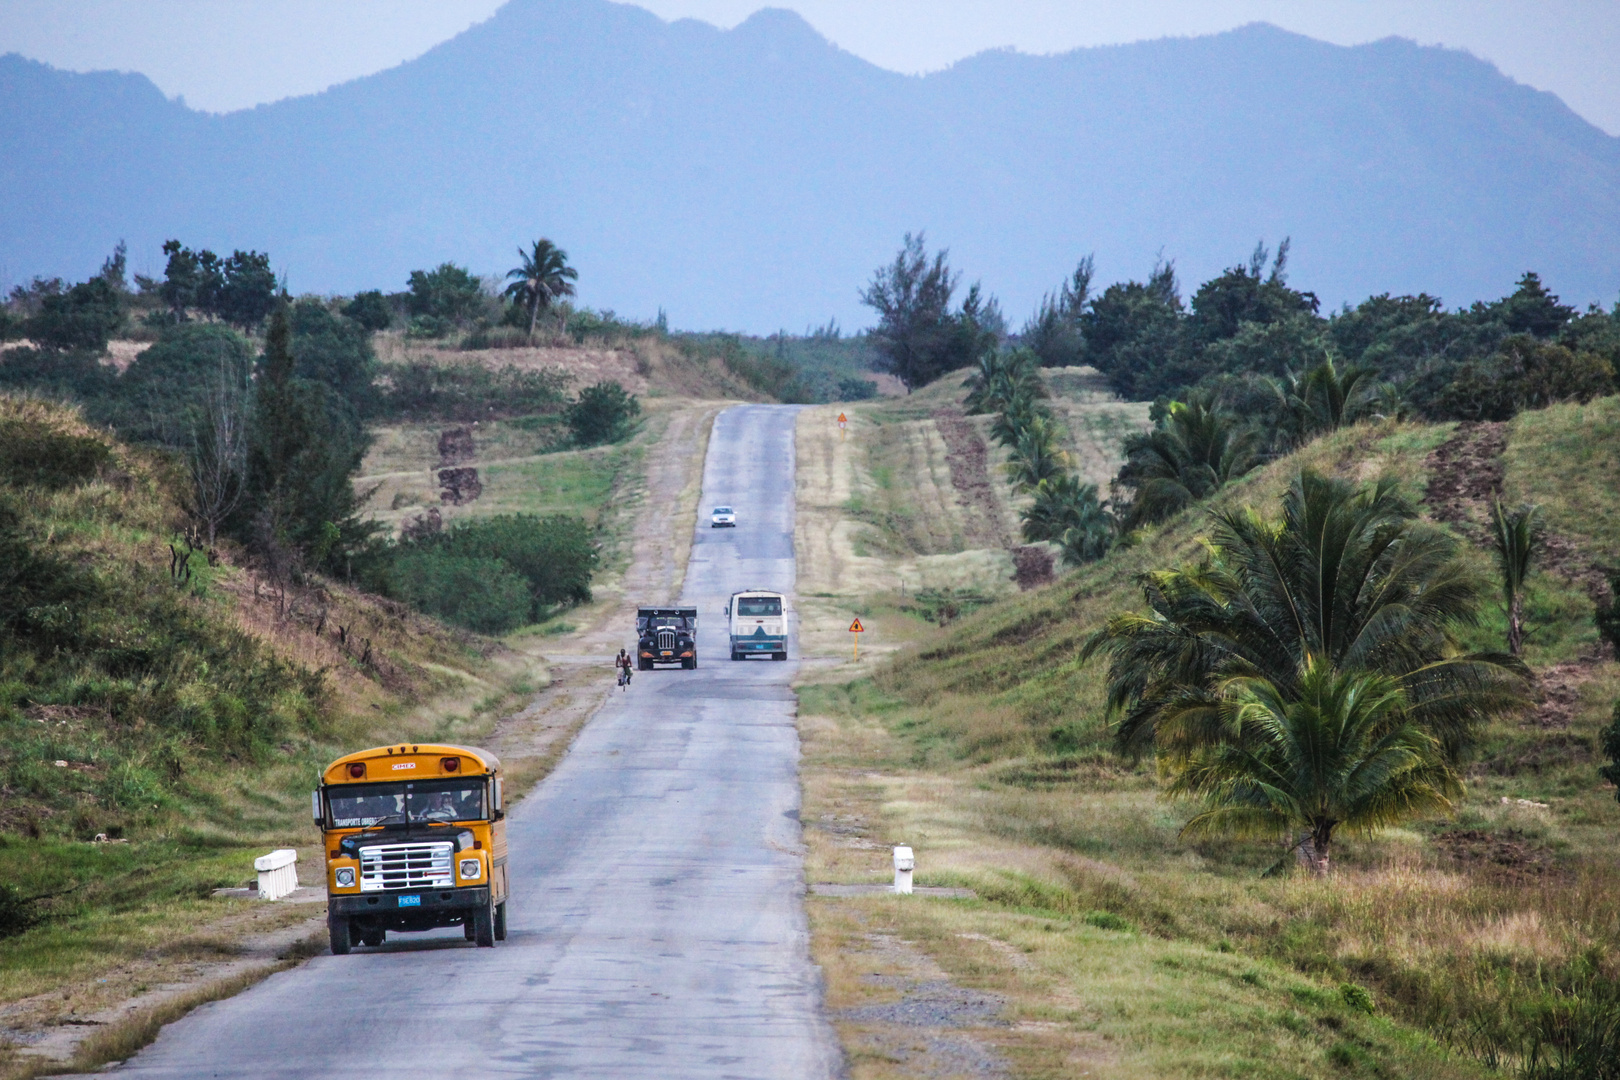 On the Road, Cuba